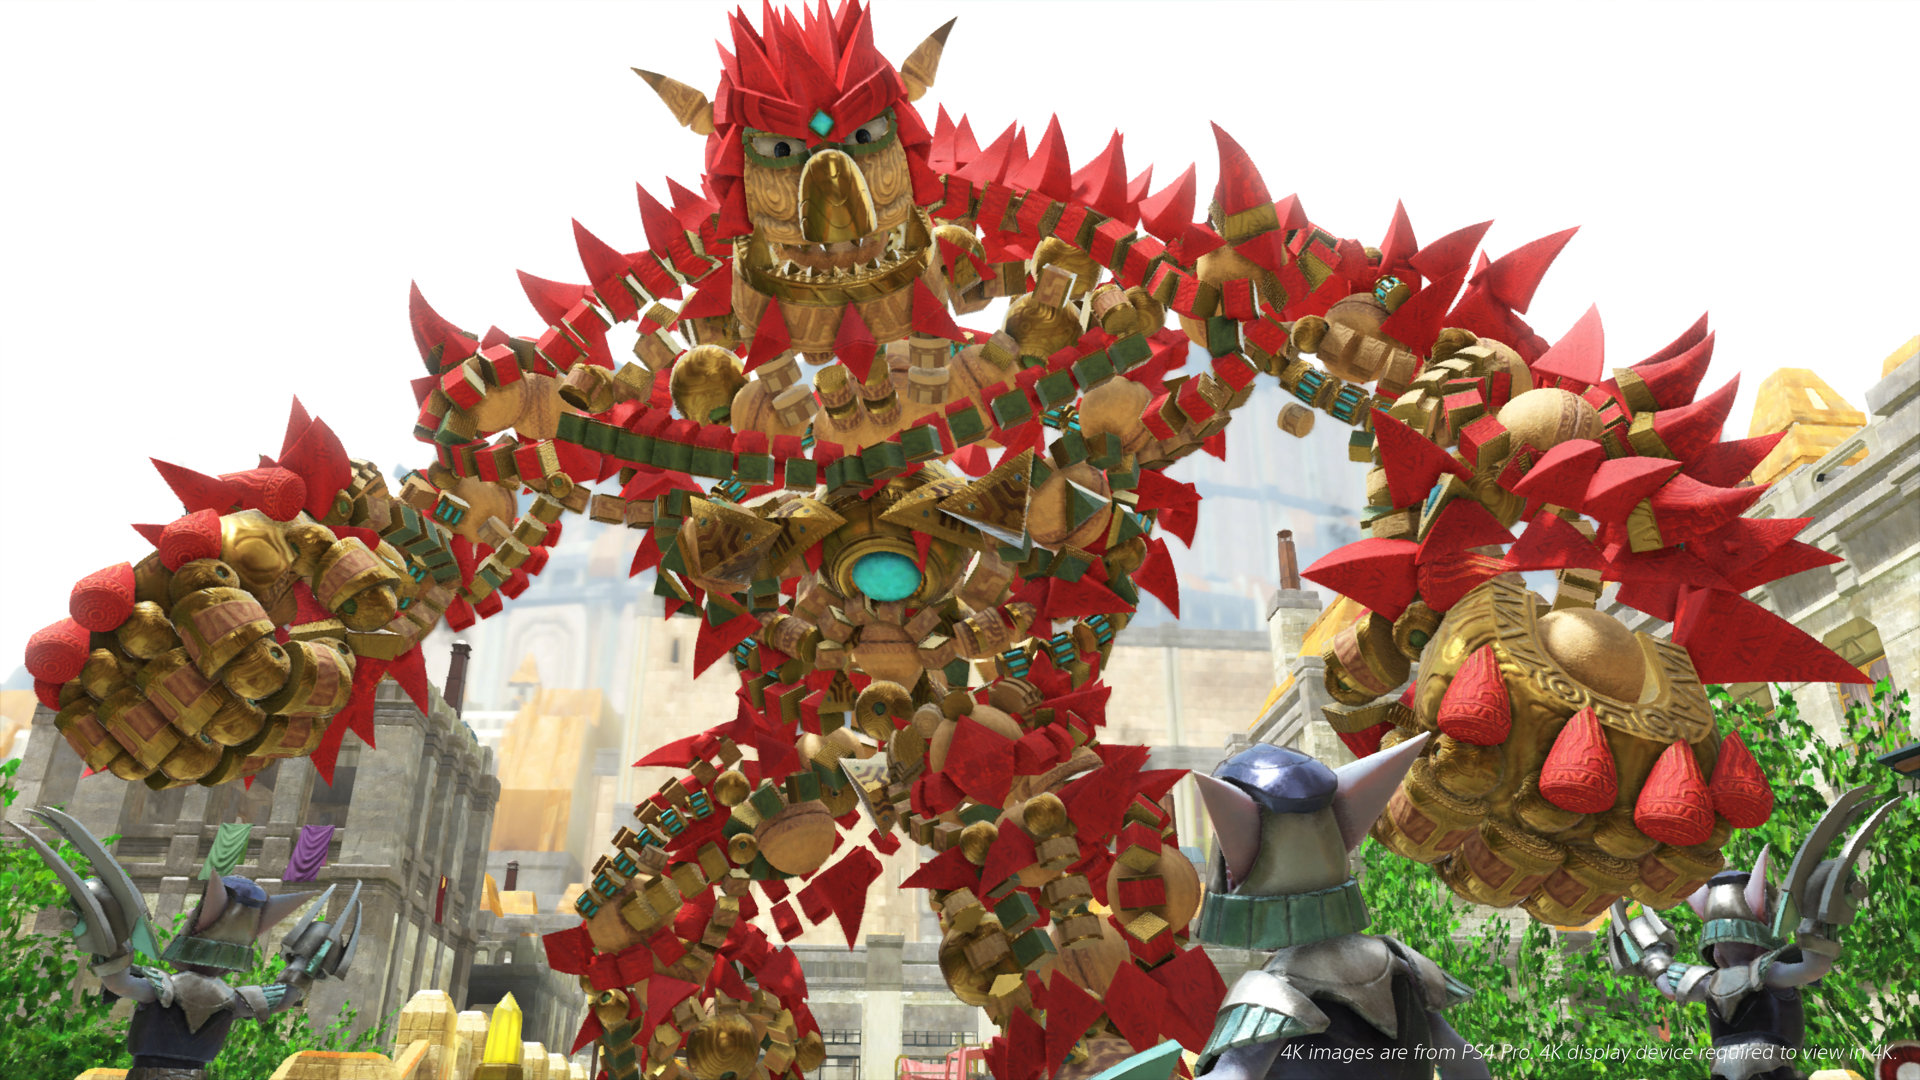 knack-2-screen-08-ps4-us-12jun17?$MediaC